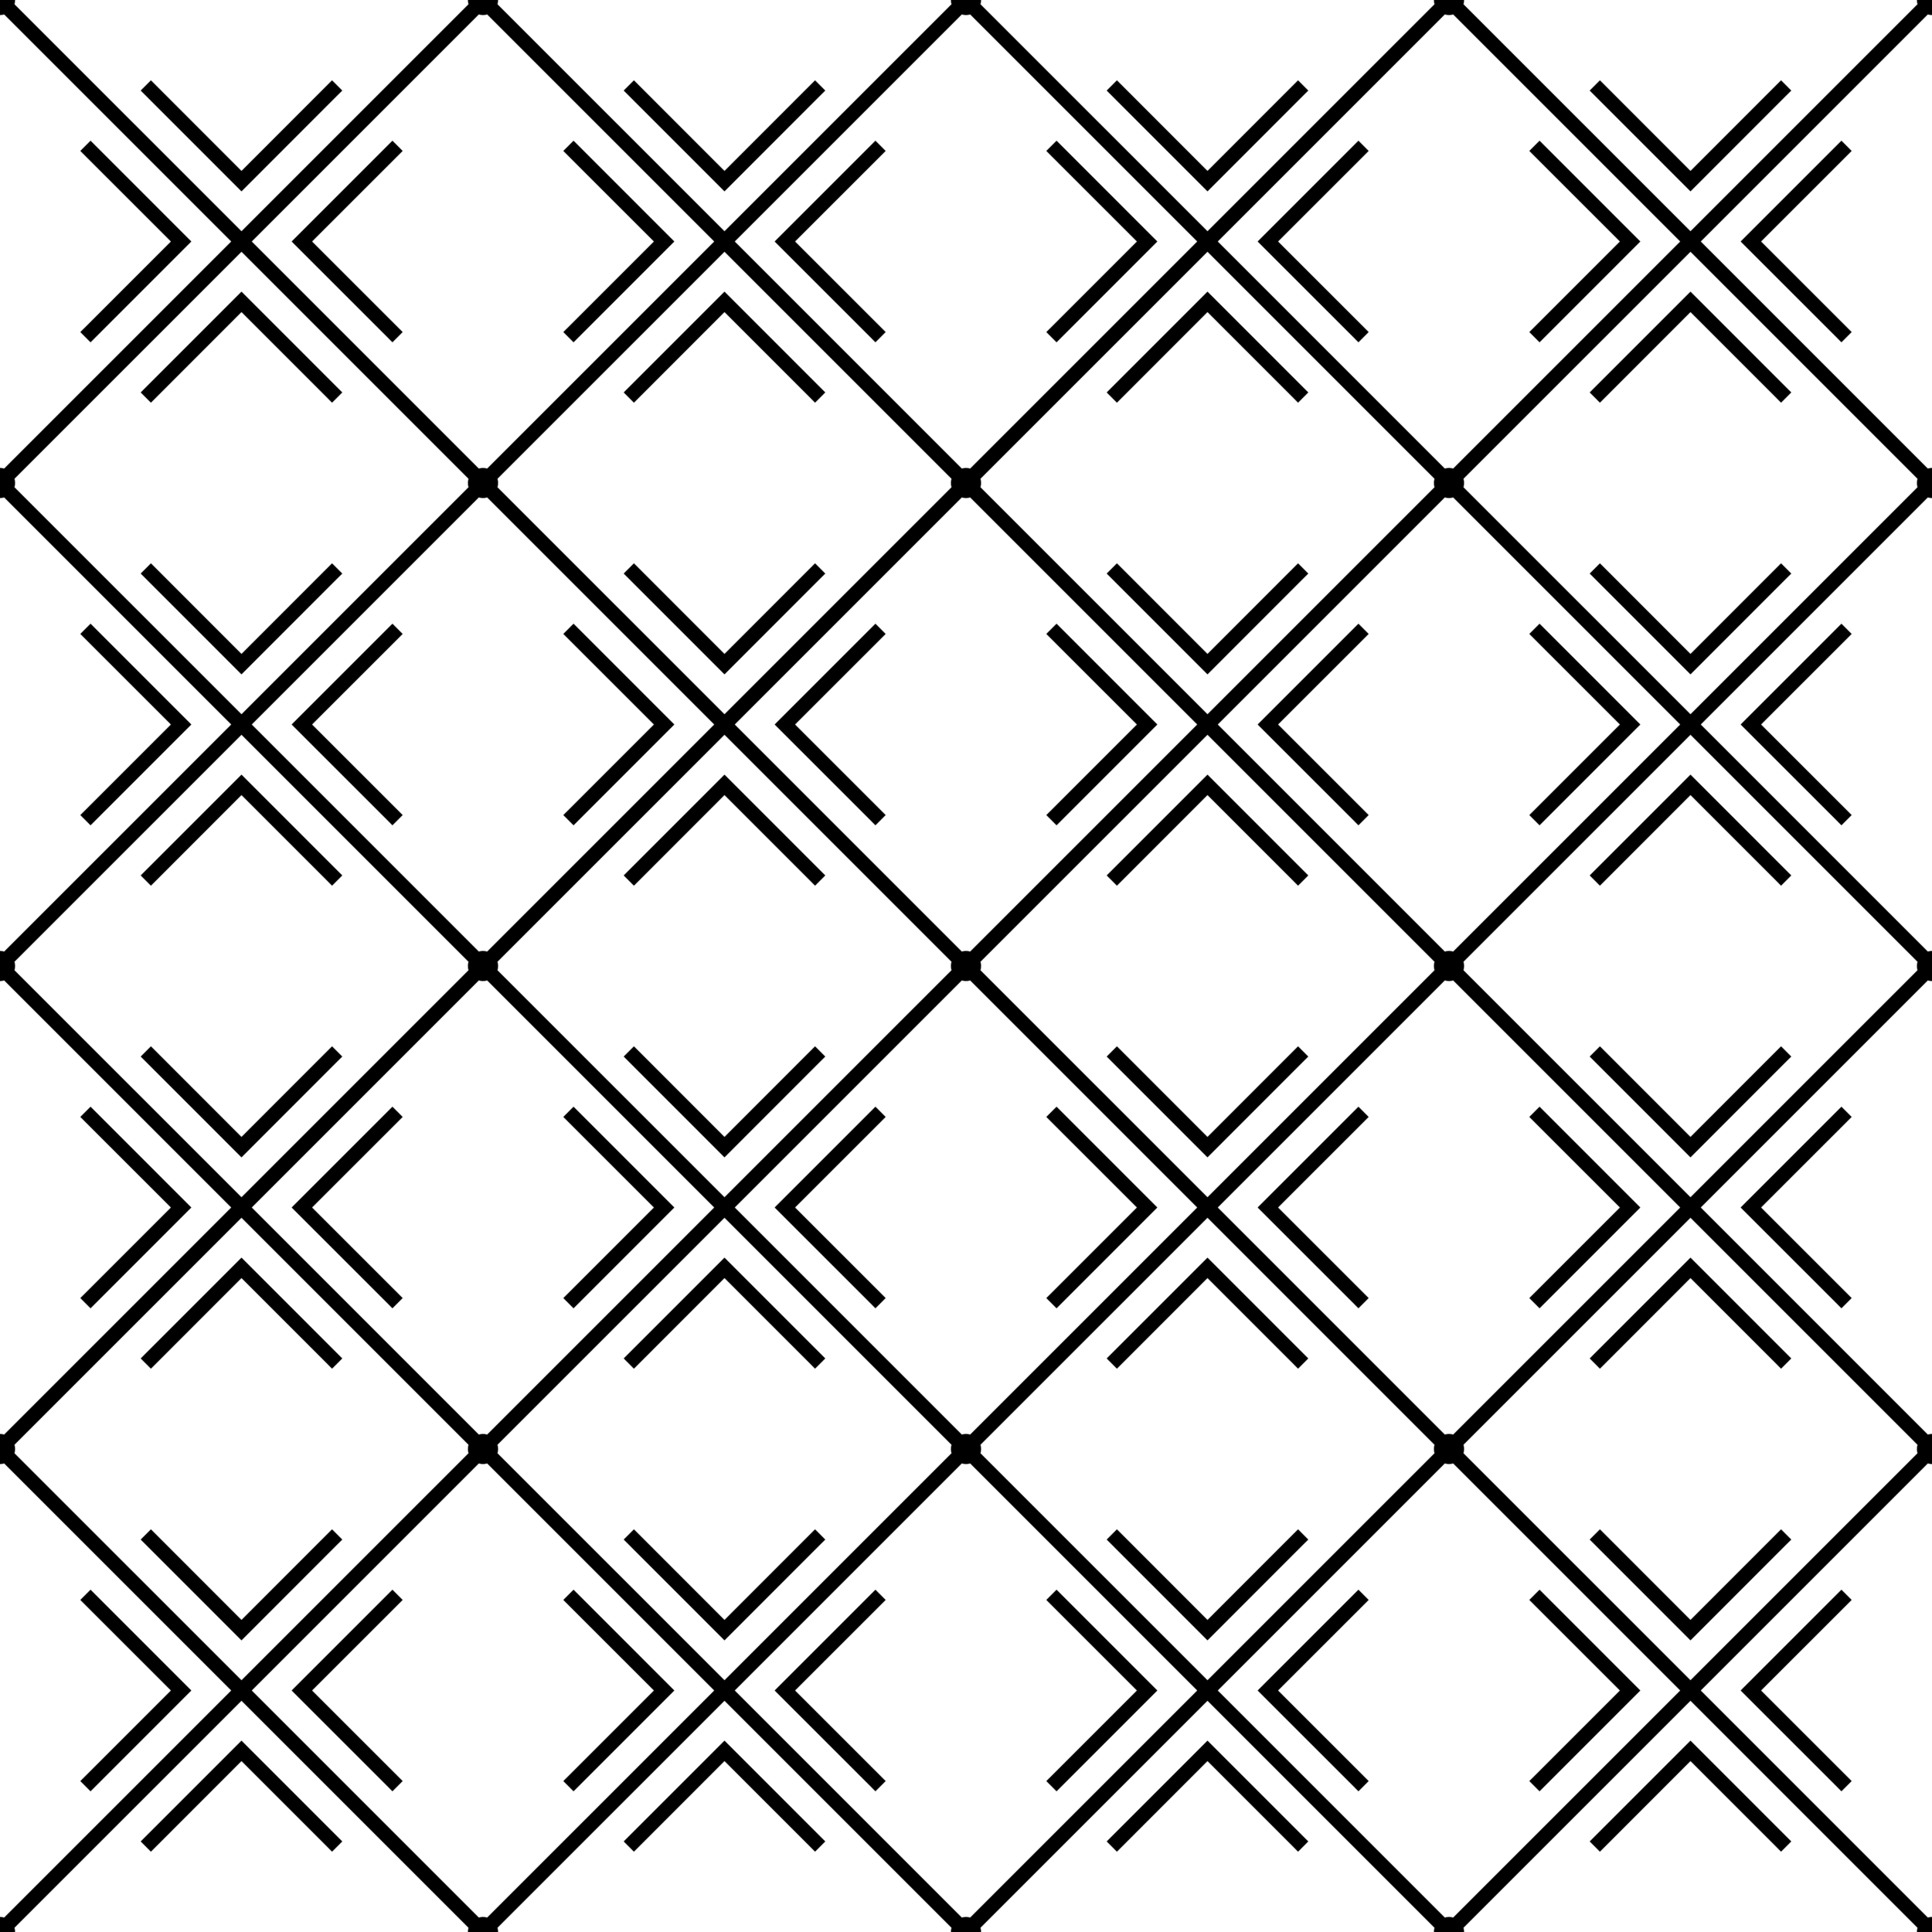 BYC_TILE_GEO_13.png